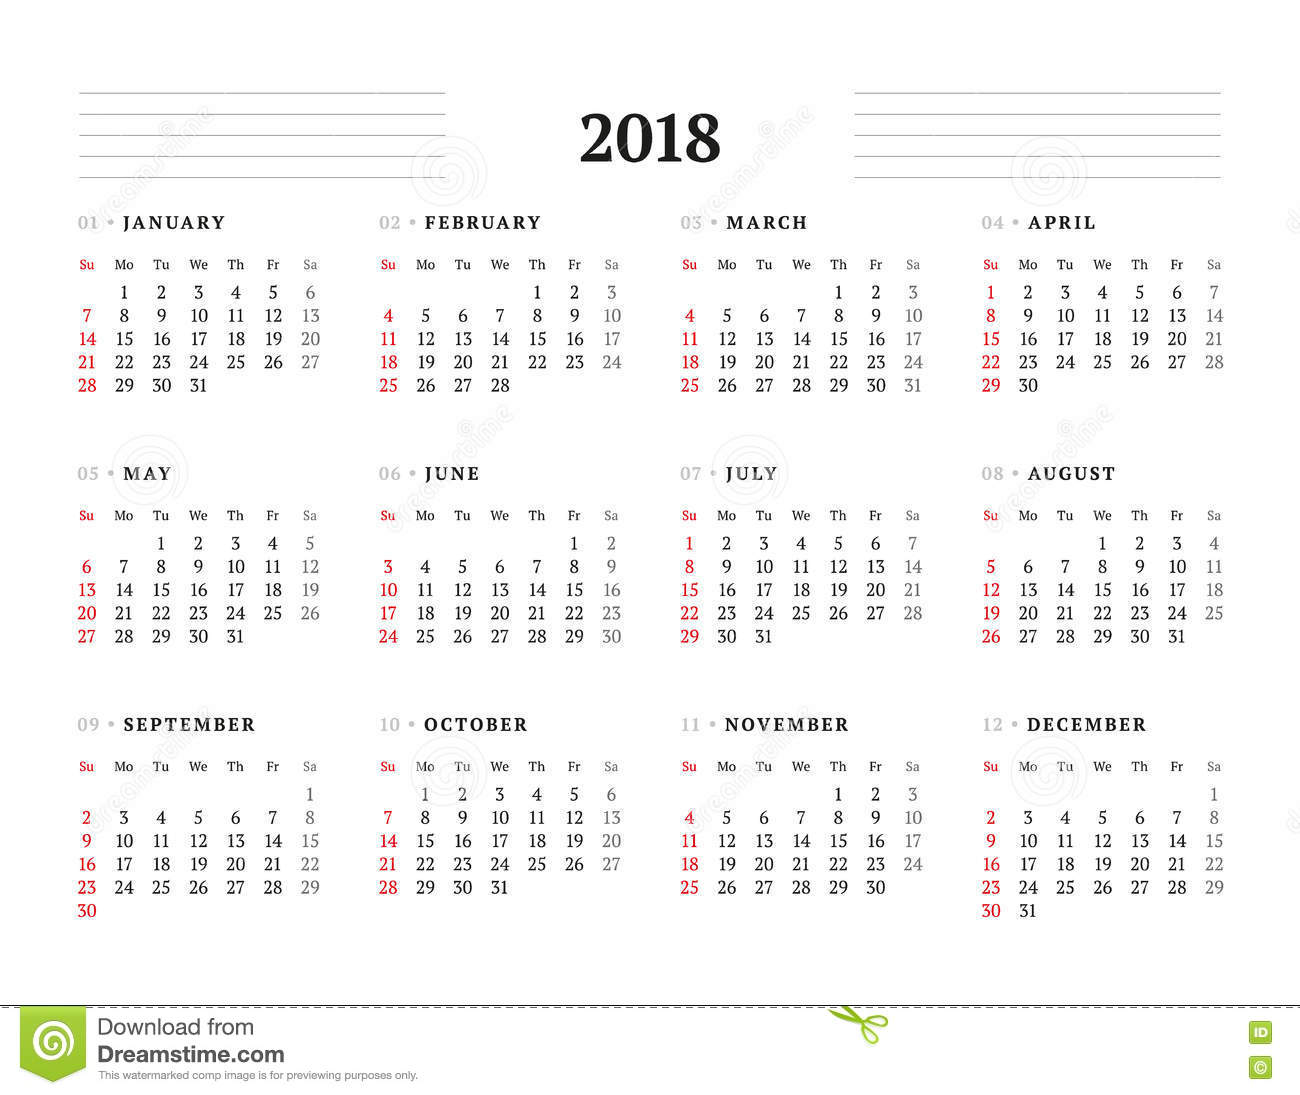 Simple Calendar Template For 2018 Year Stock Vector - Image: 74416042